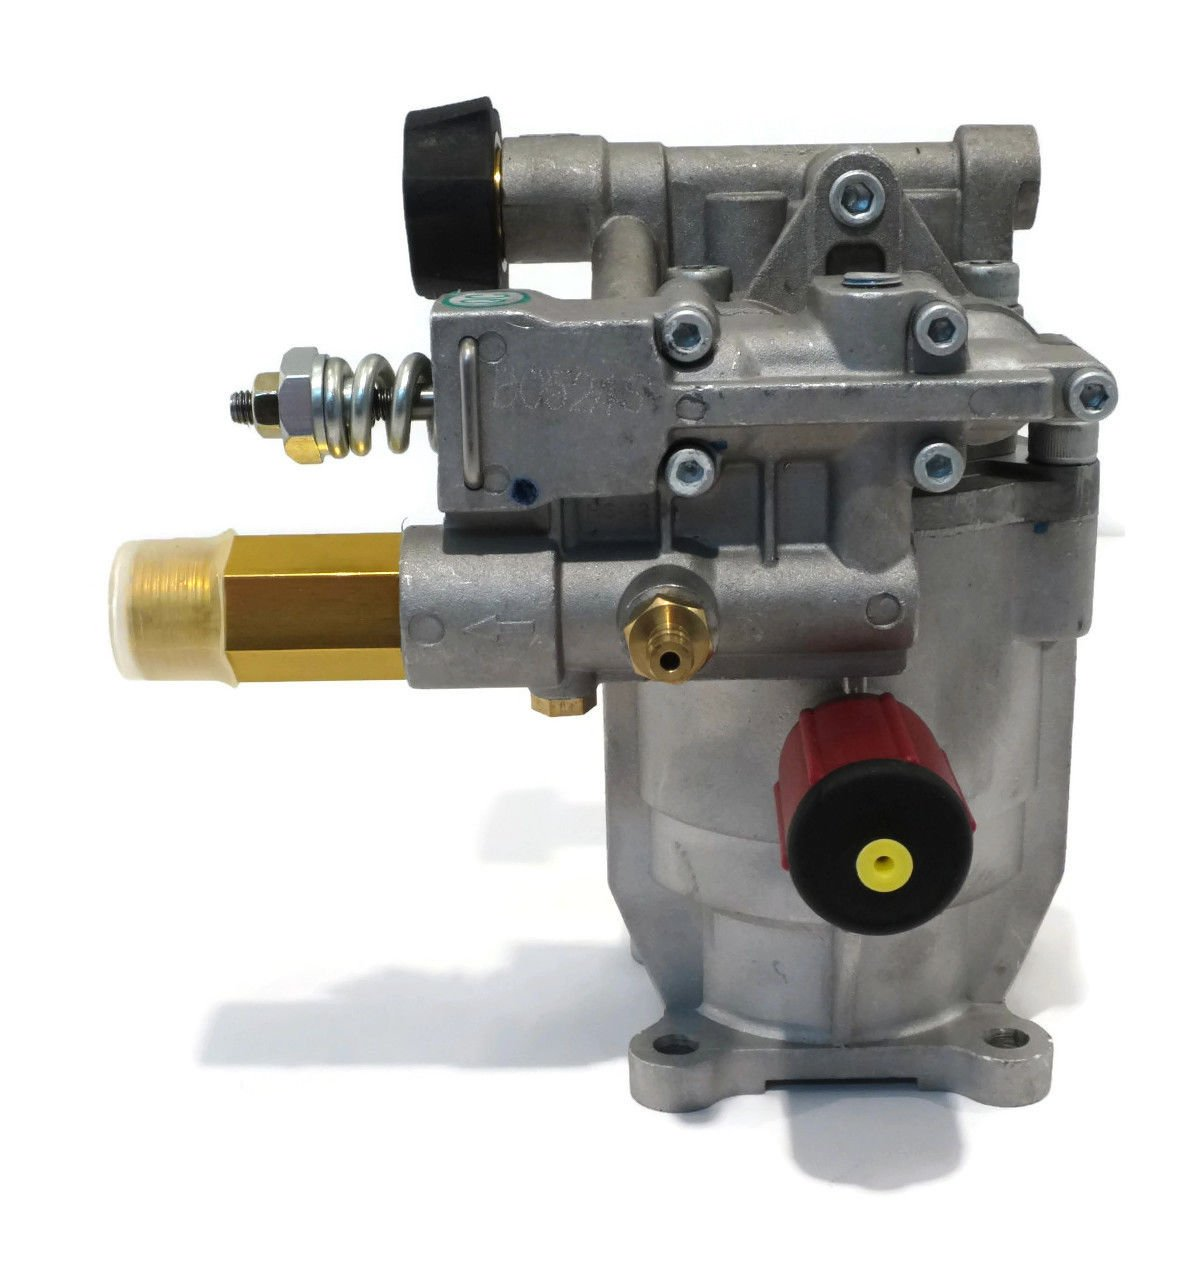 PRESSURE WASHER PUMP fits Many Makes /& Models w// HONDA GC160 Engine 7//8 Shaft by The ROP Shop